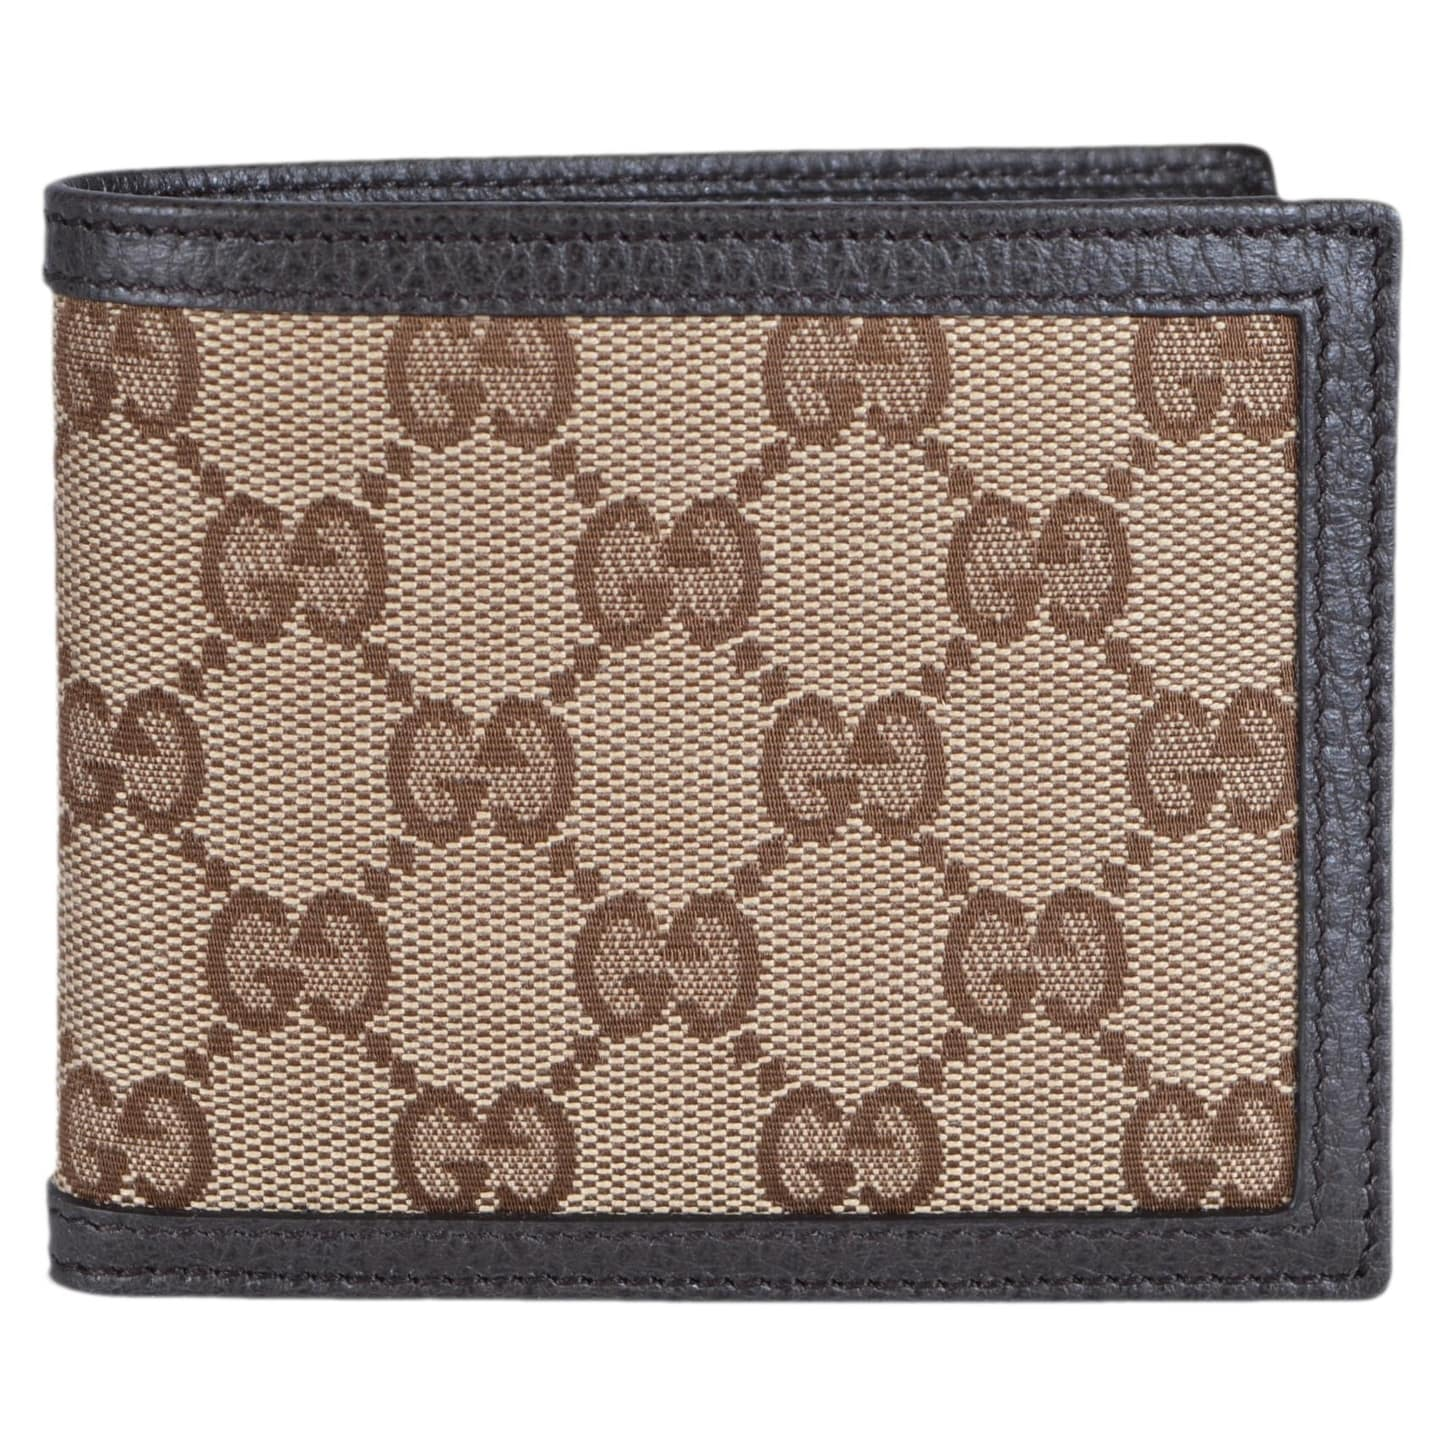 a147f2f20313 Shop Gucci Men's 260987 Beige Canvas GG Guccissima Bifold Wallet - ebony  beige - Free Shipping Today - Overstock - 15999256